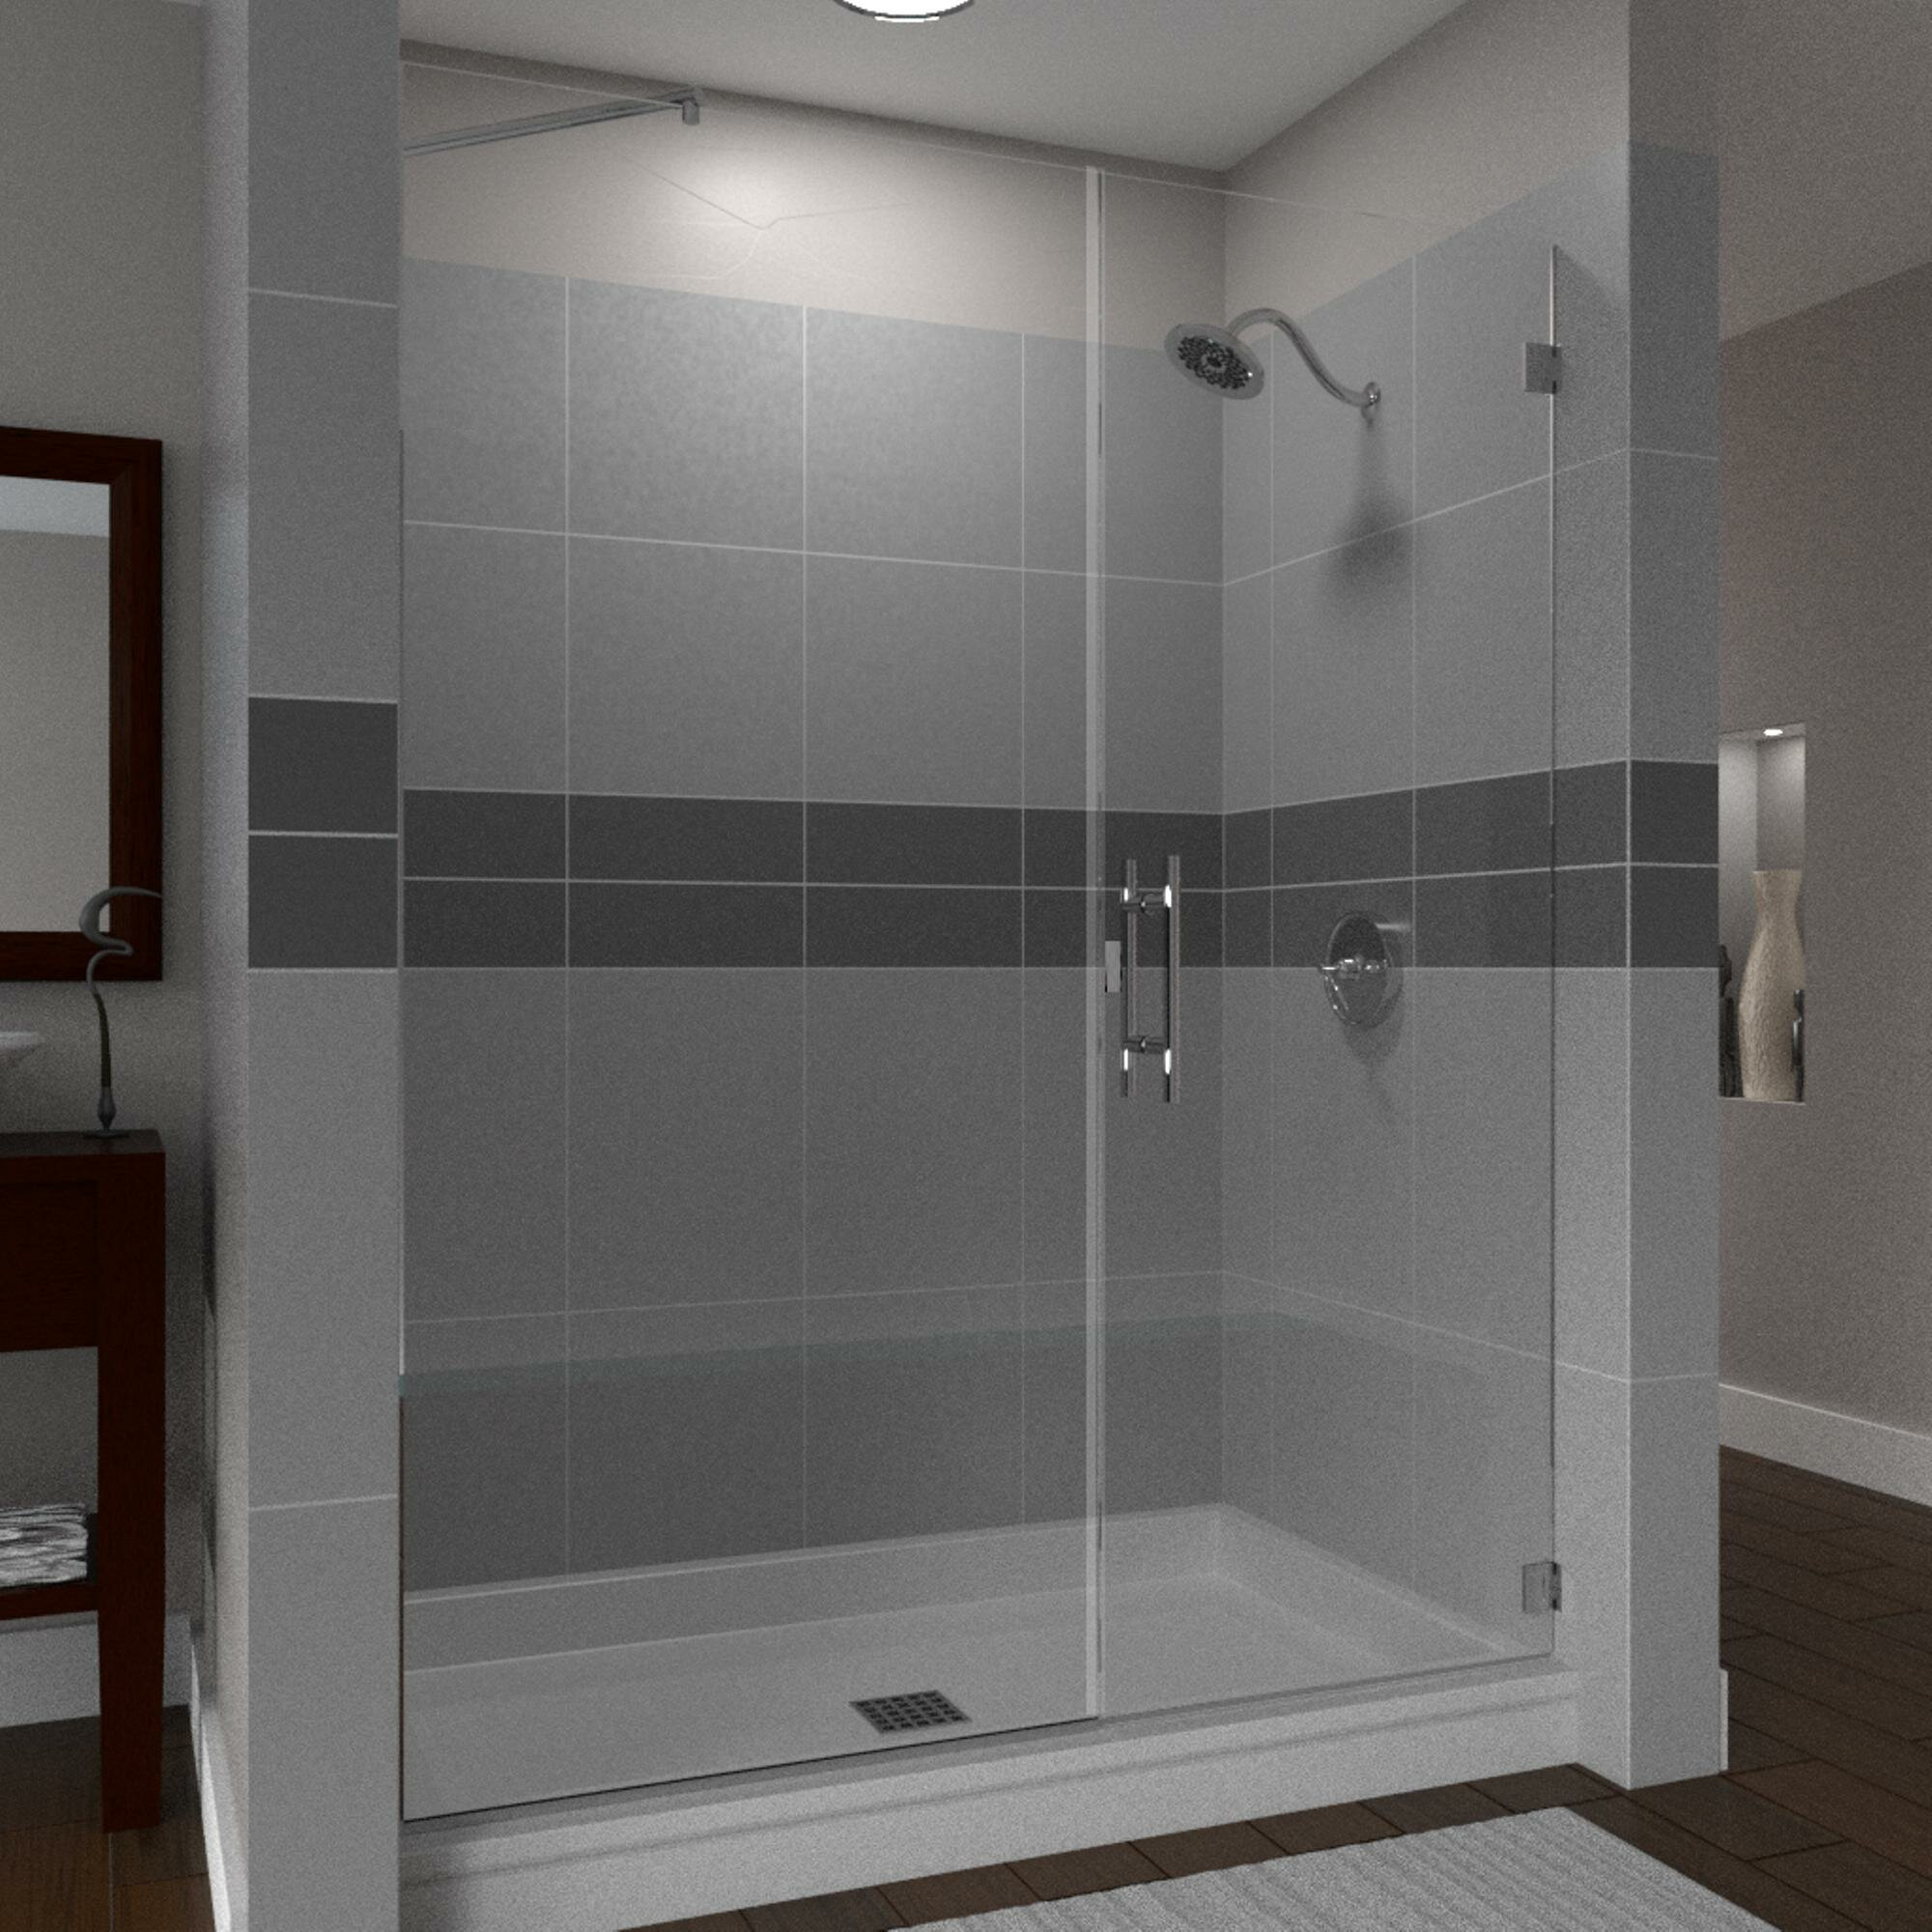 Scottsdale 35 X 72 Hinged Frameless Shower Door With Invisible Shield By Clean X